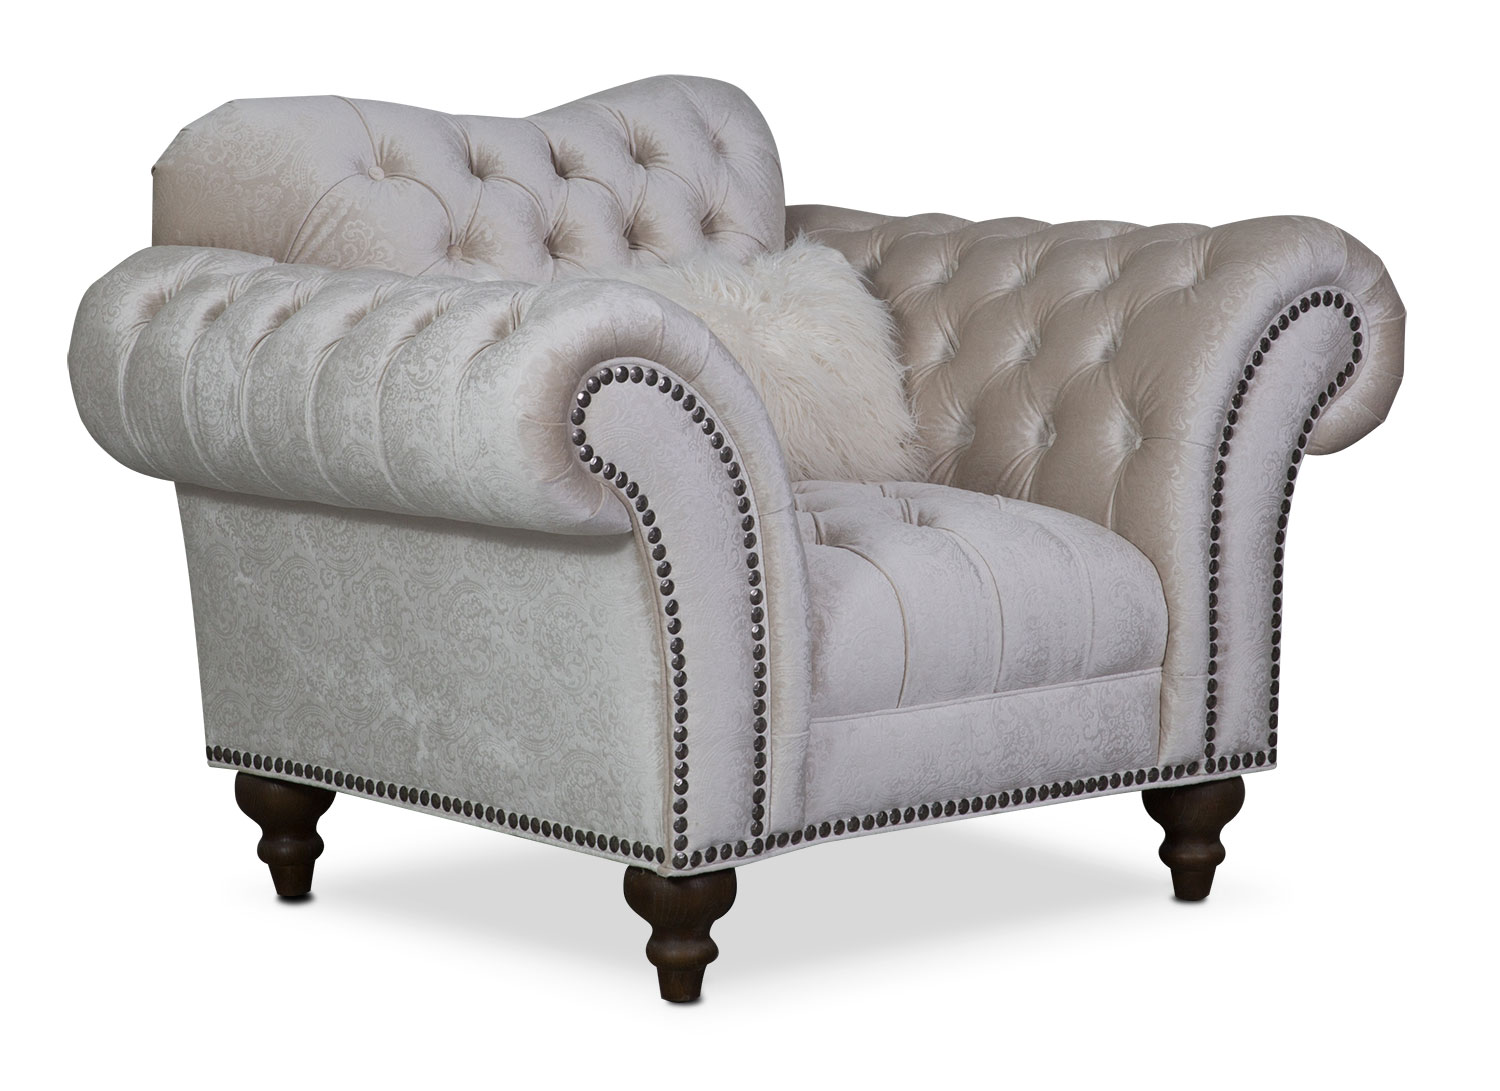 Living Room Furniture - Brittney Chair - Ivory